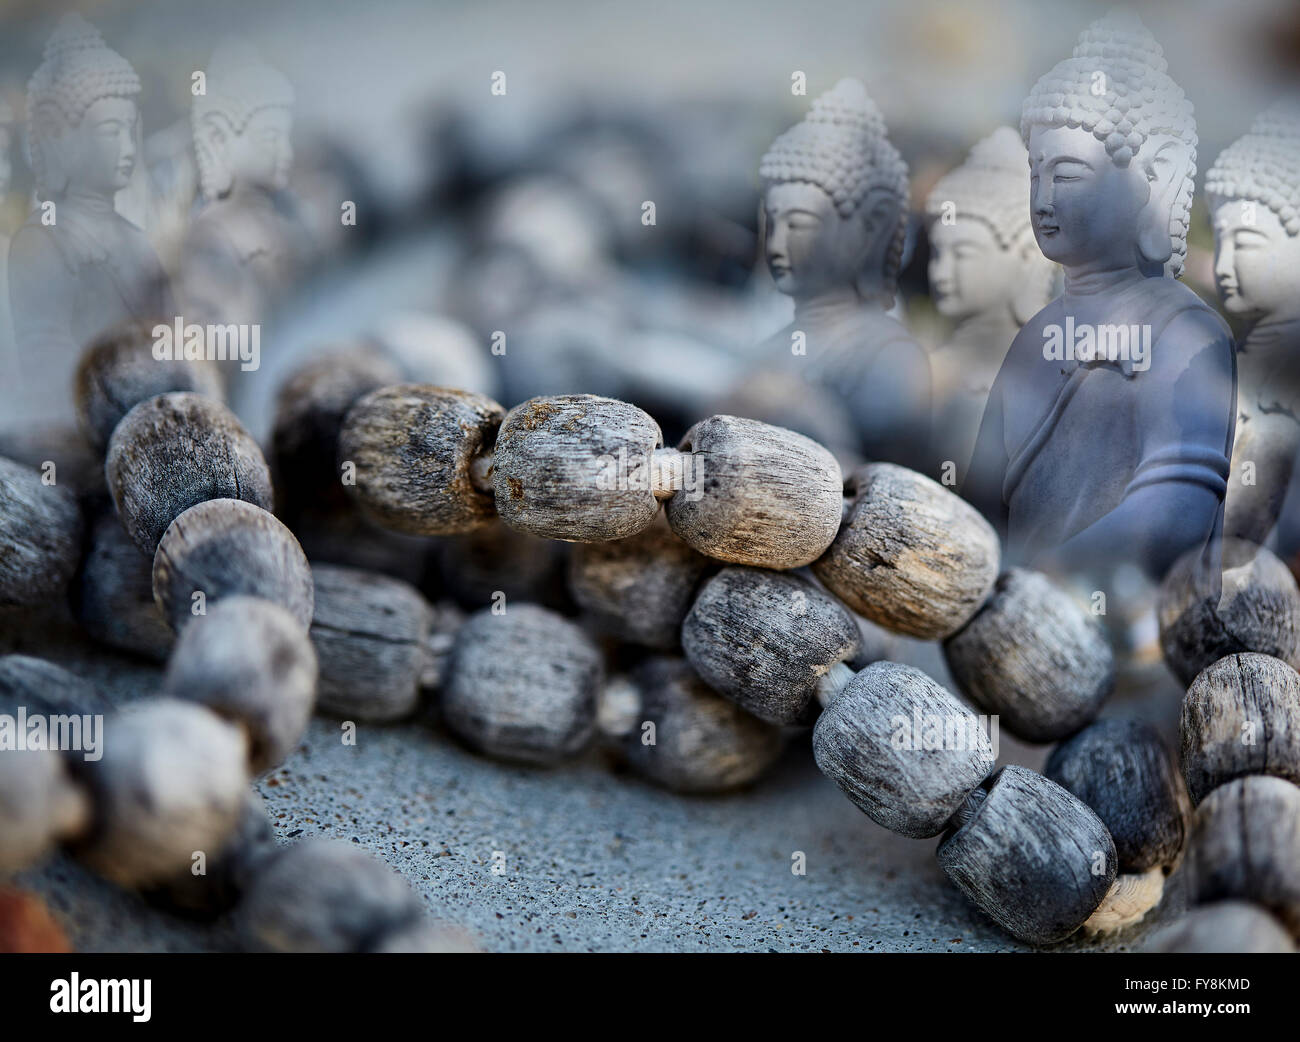 Weathered Prayer Beads with Meditating Buddha Spirit Guides concept photograph Stock Photo